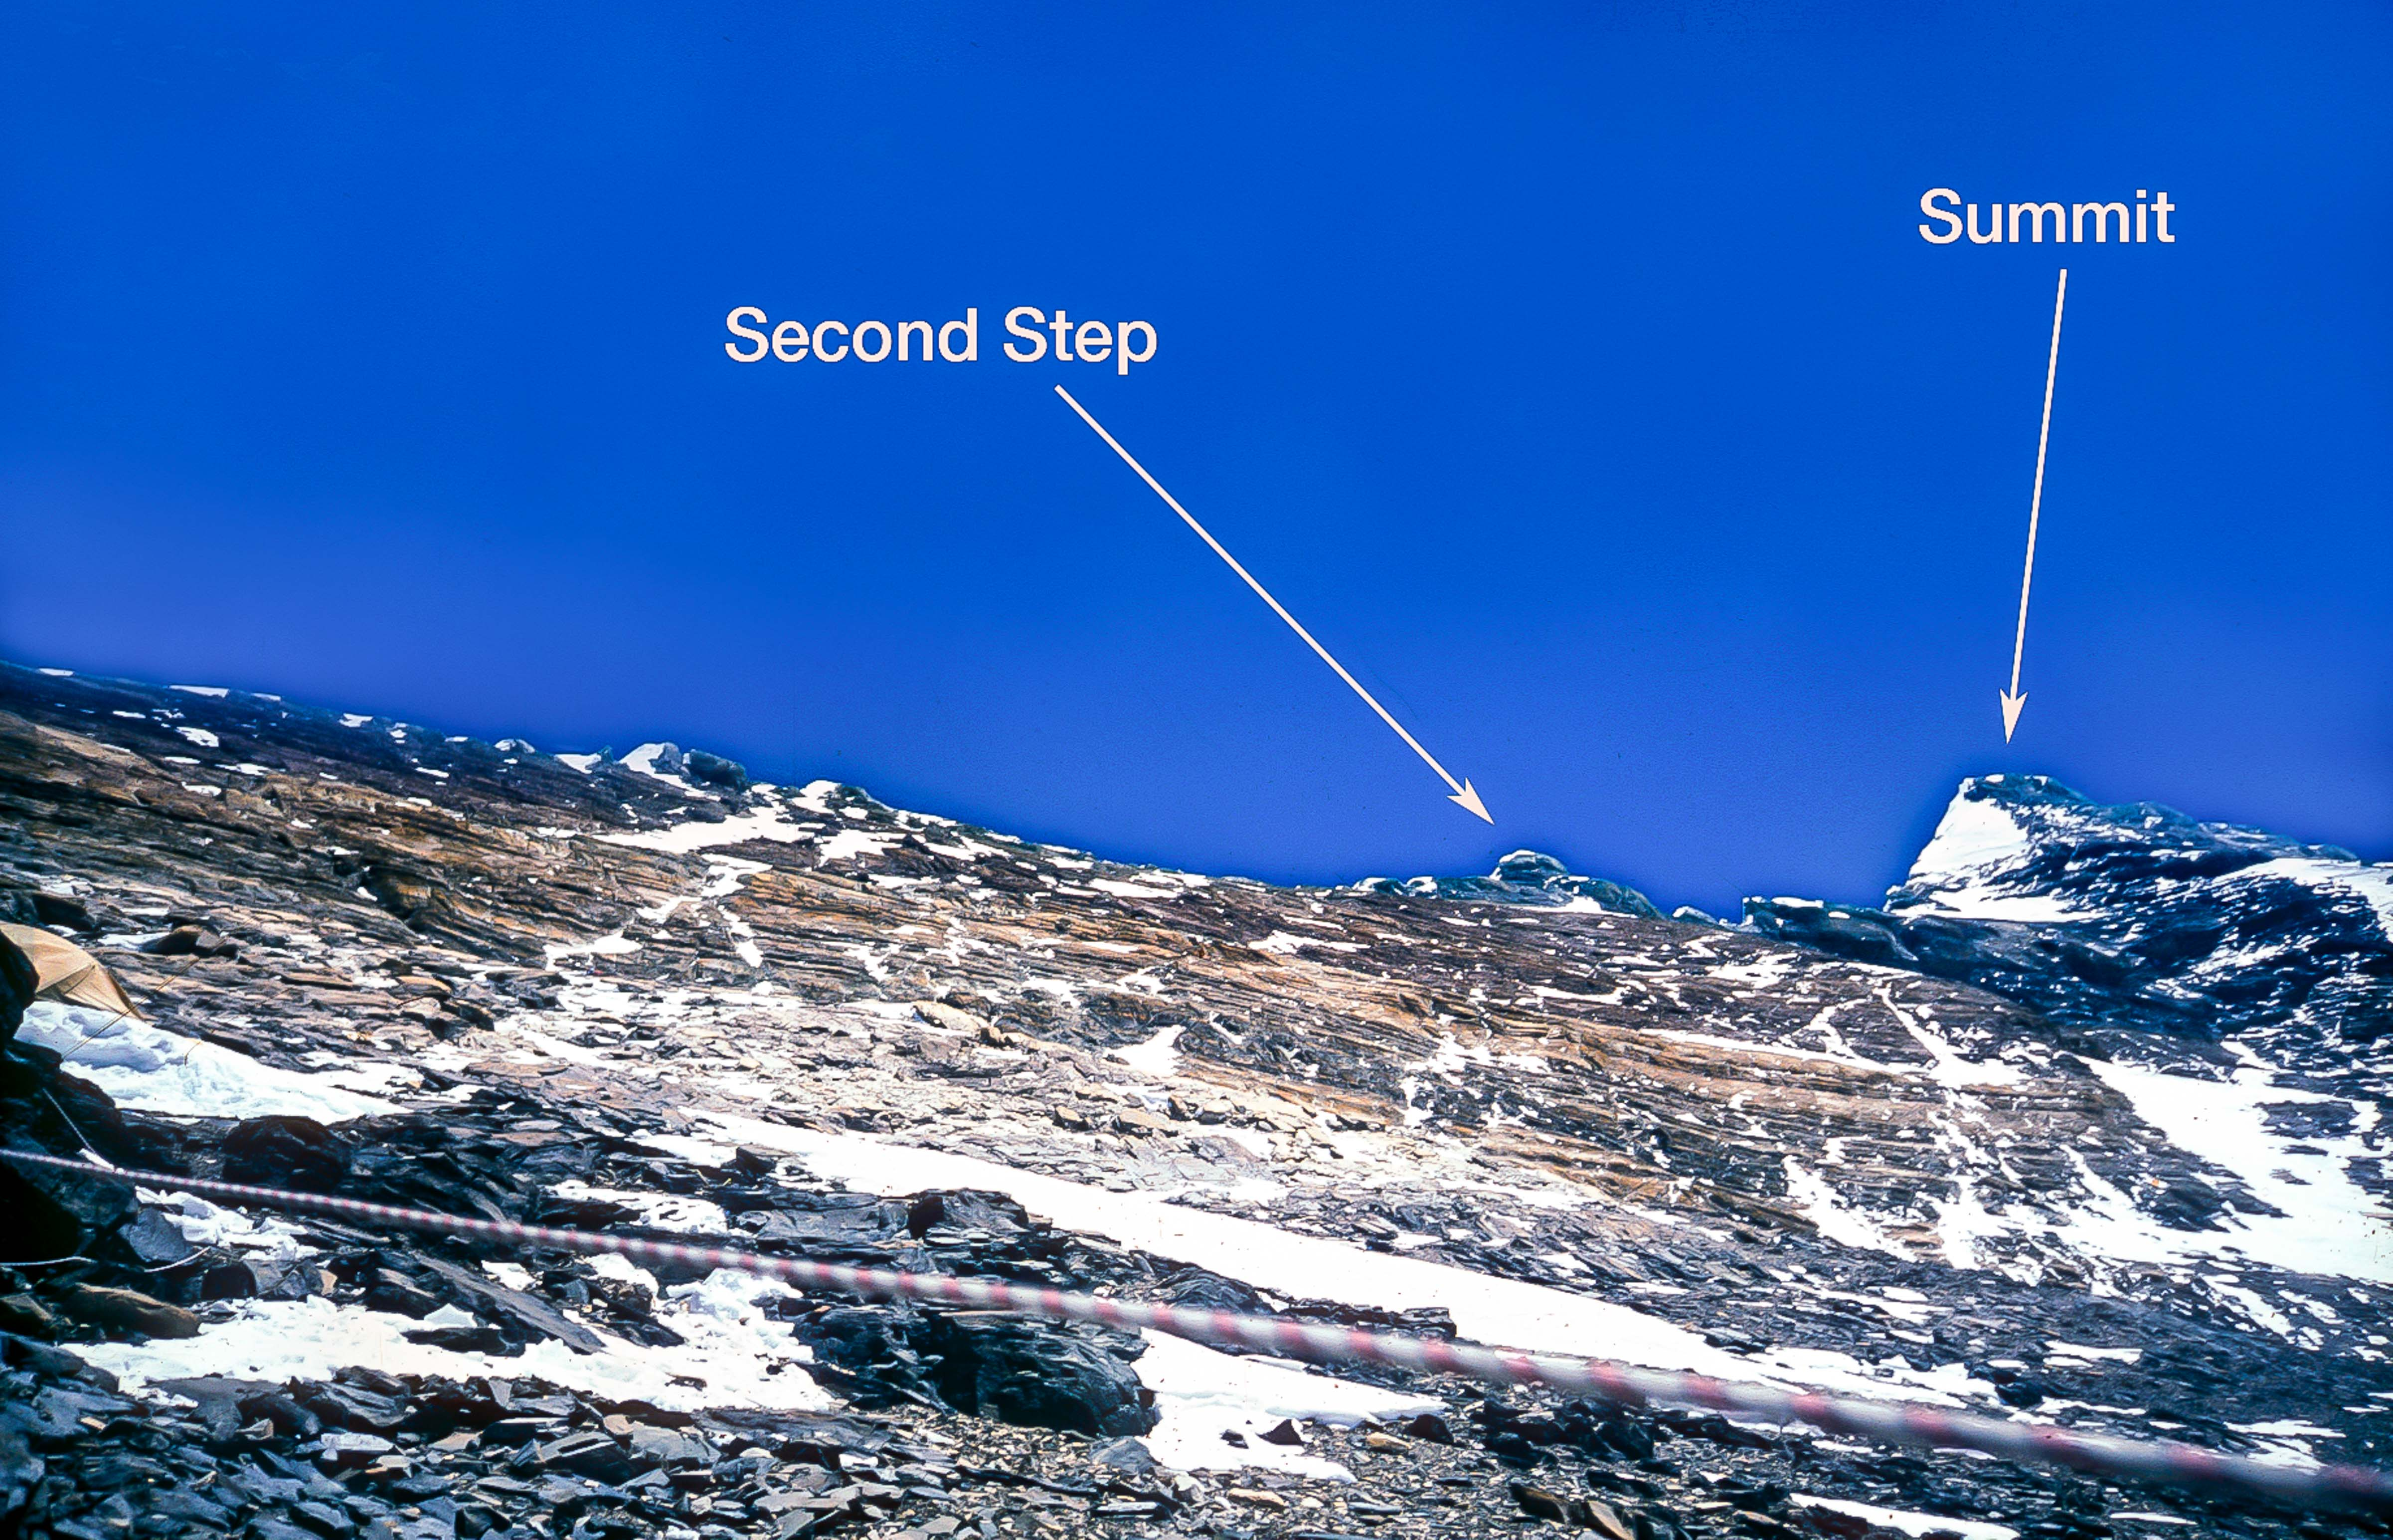 Tibet, Everest, North Ridge Route, Camp 3, Showing Second Step, Summit Pyramid, 8200m, 1995